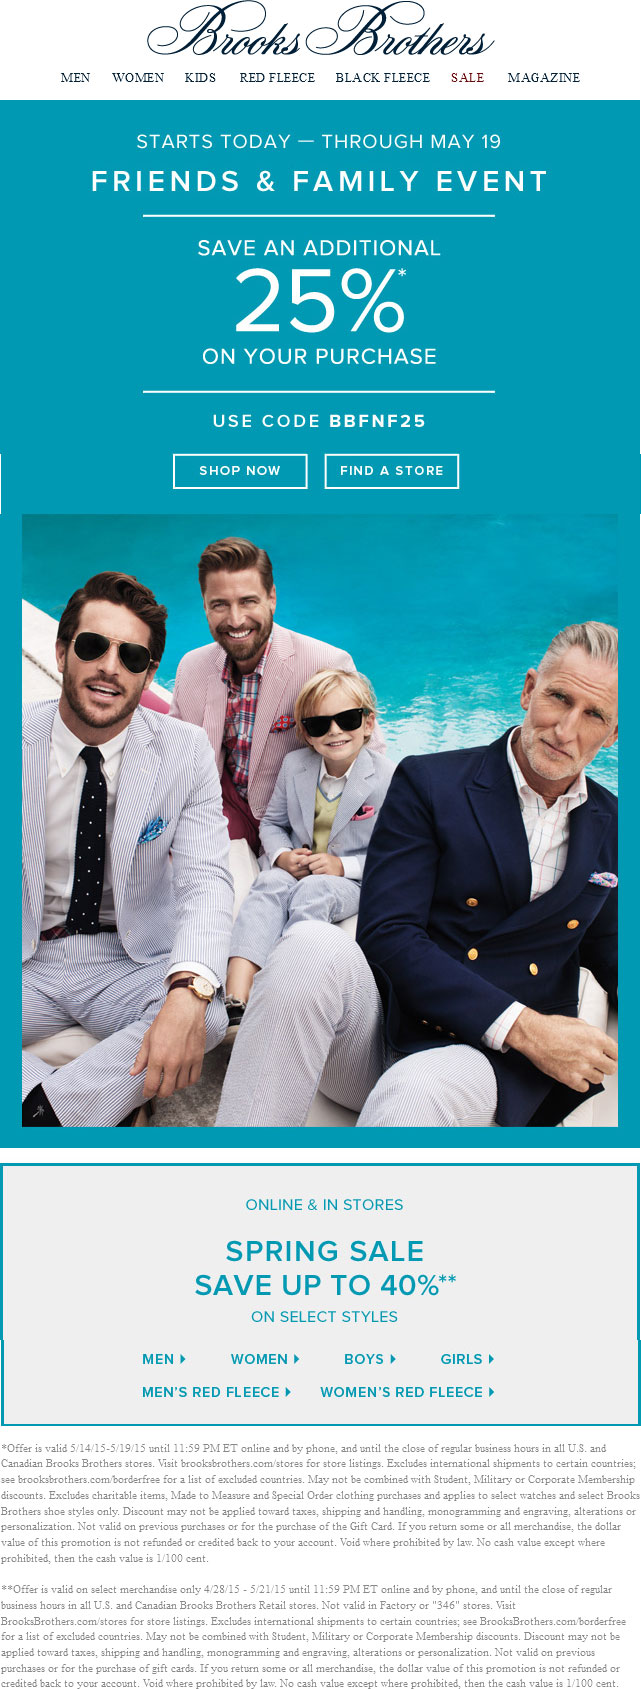 Brooks Brothers Coupon July 2017 25% off at Brooks Brothers, or online via promo code BBFNF25